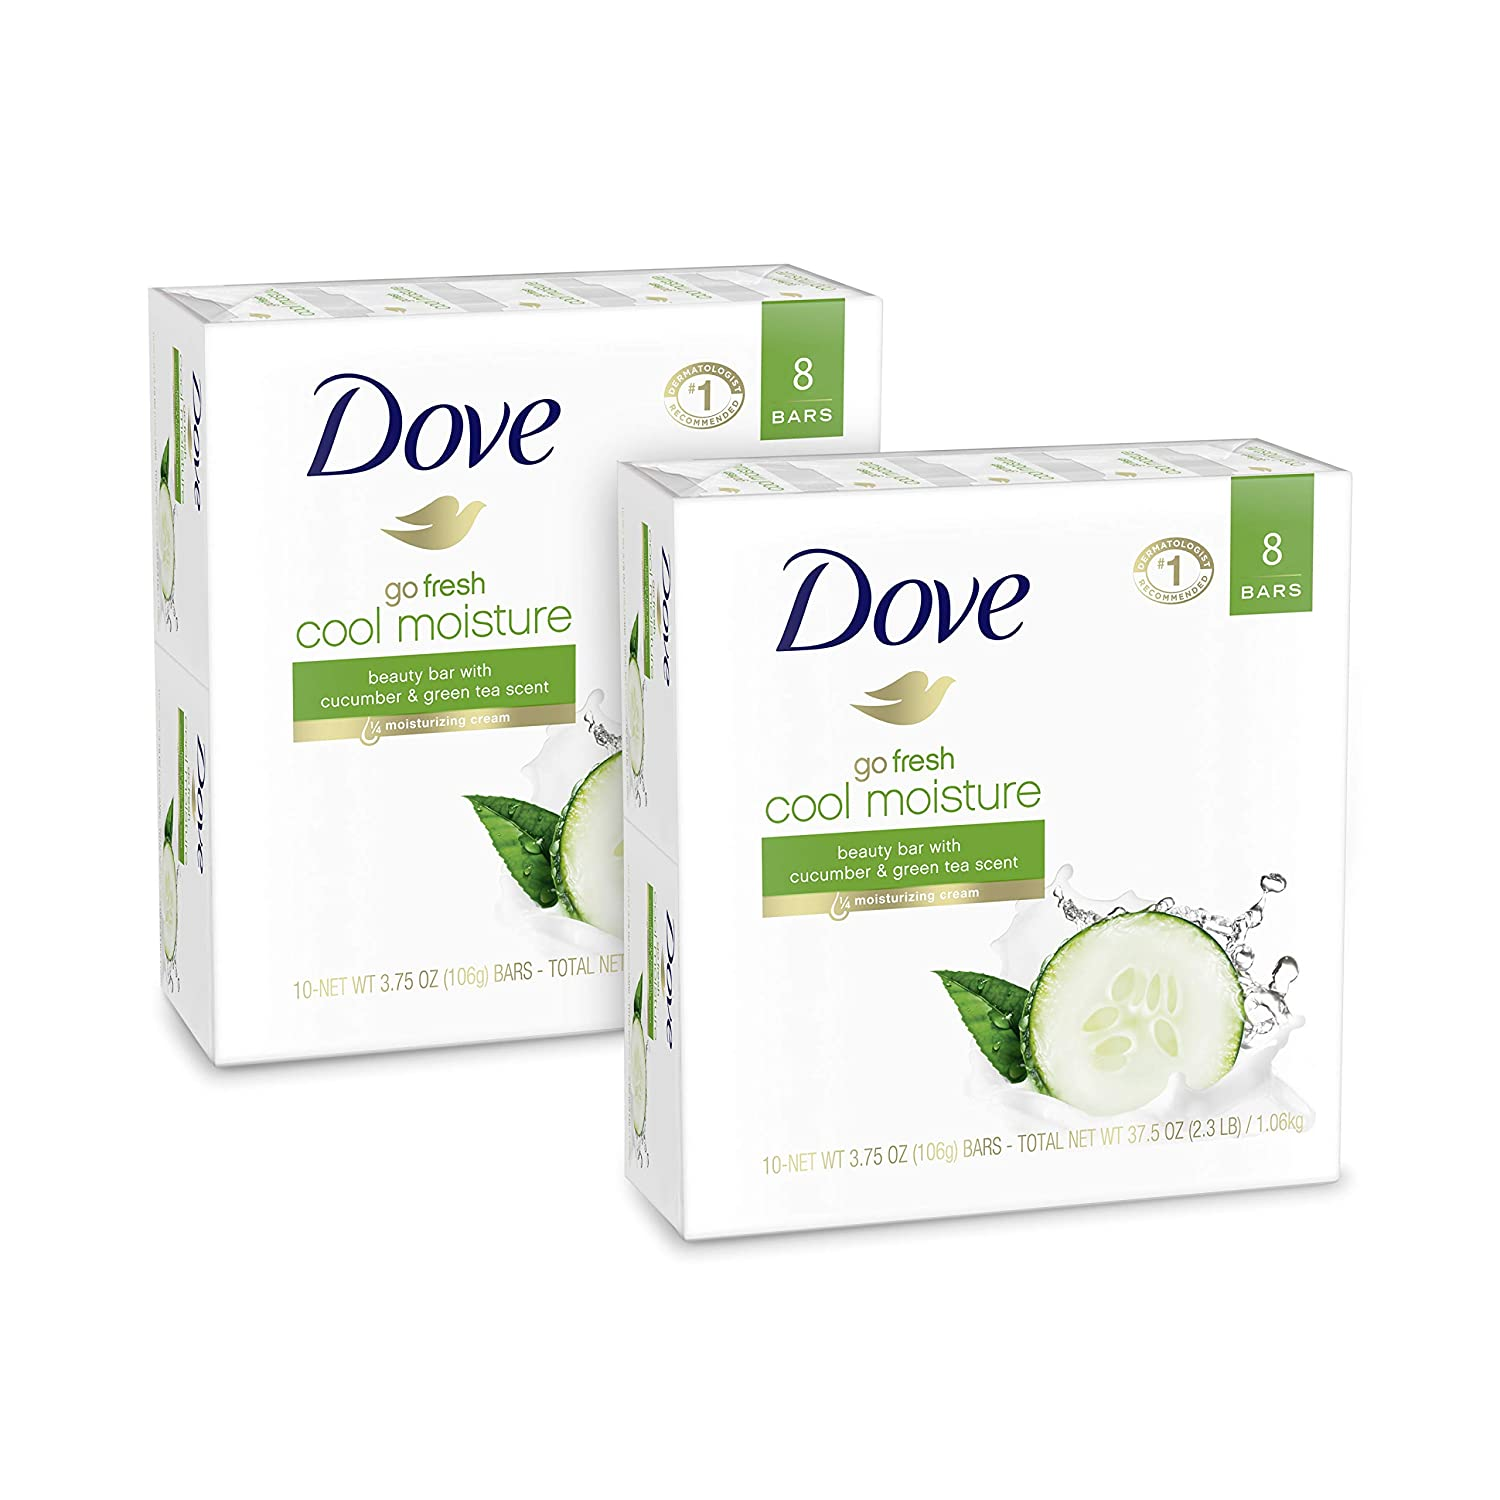 Dove Go Fresh Cucumber & Green Tea Bar Soap